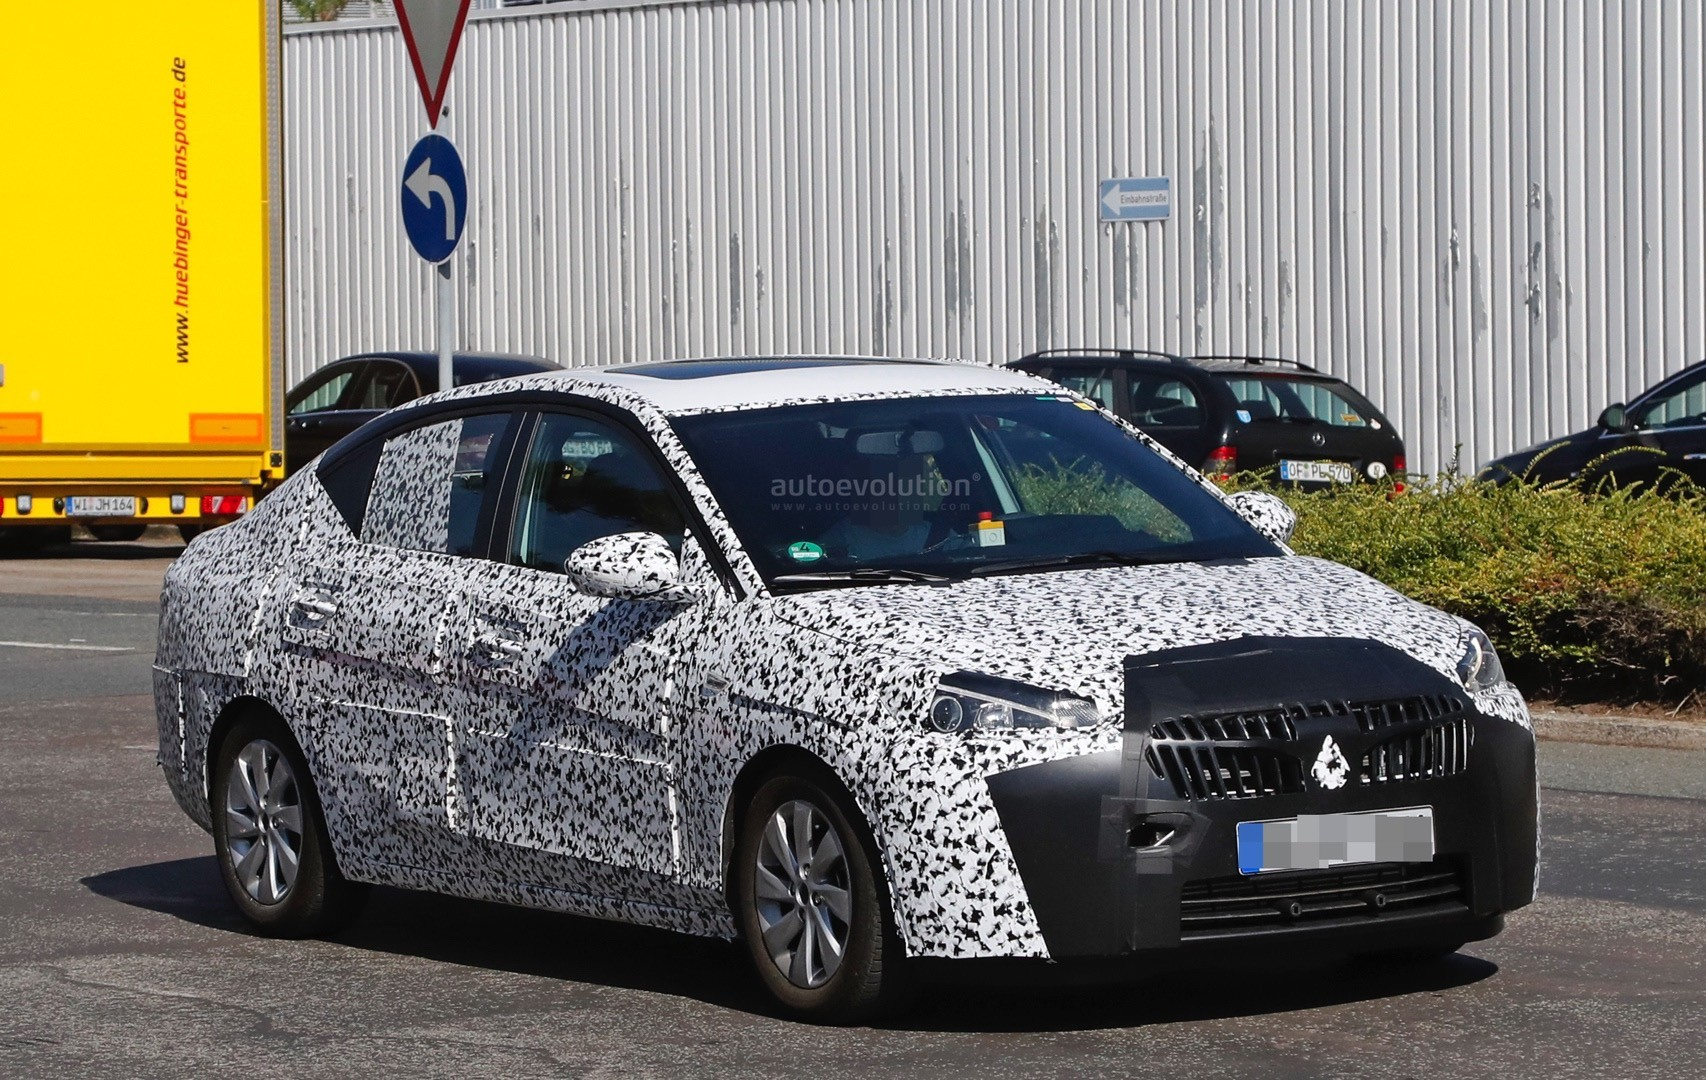 2019- [Opel] Corsa F [P2JO] - Page 3 2018-opel-corsa-f-sedan-spied-to-be-launched-in-china-as-2018-chevrolet-sail_2